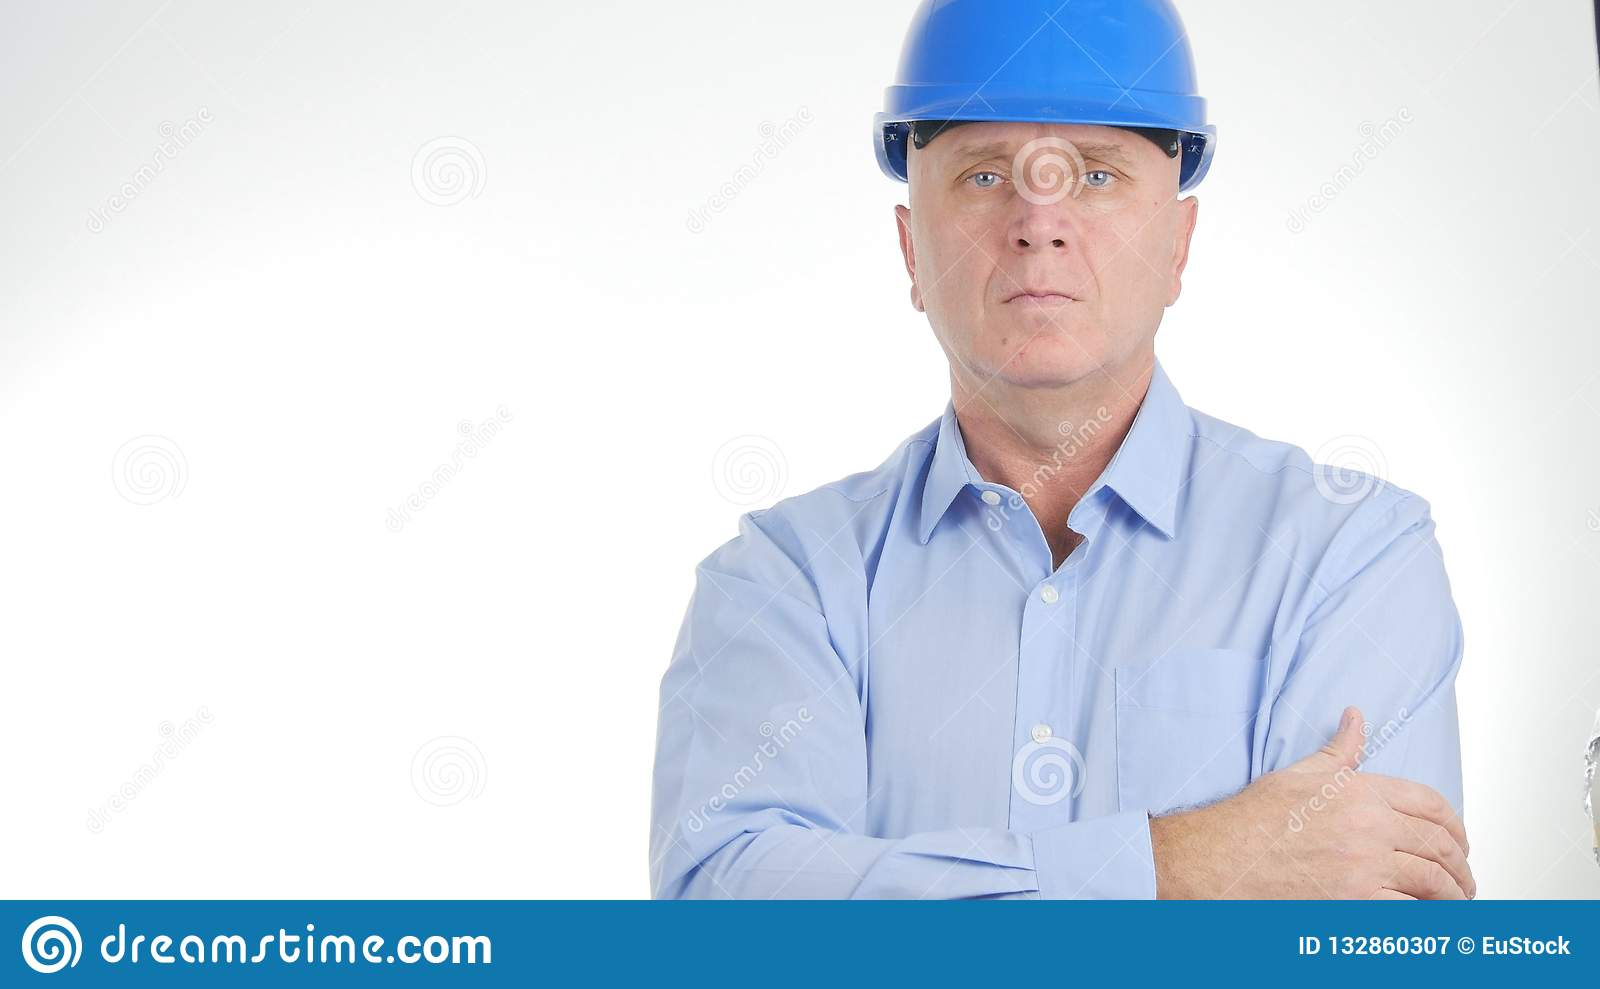 Confident Engineer Presentation in Business Meeting